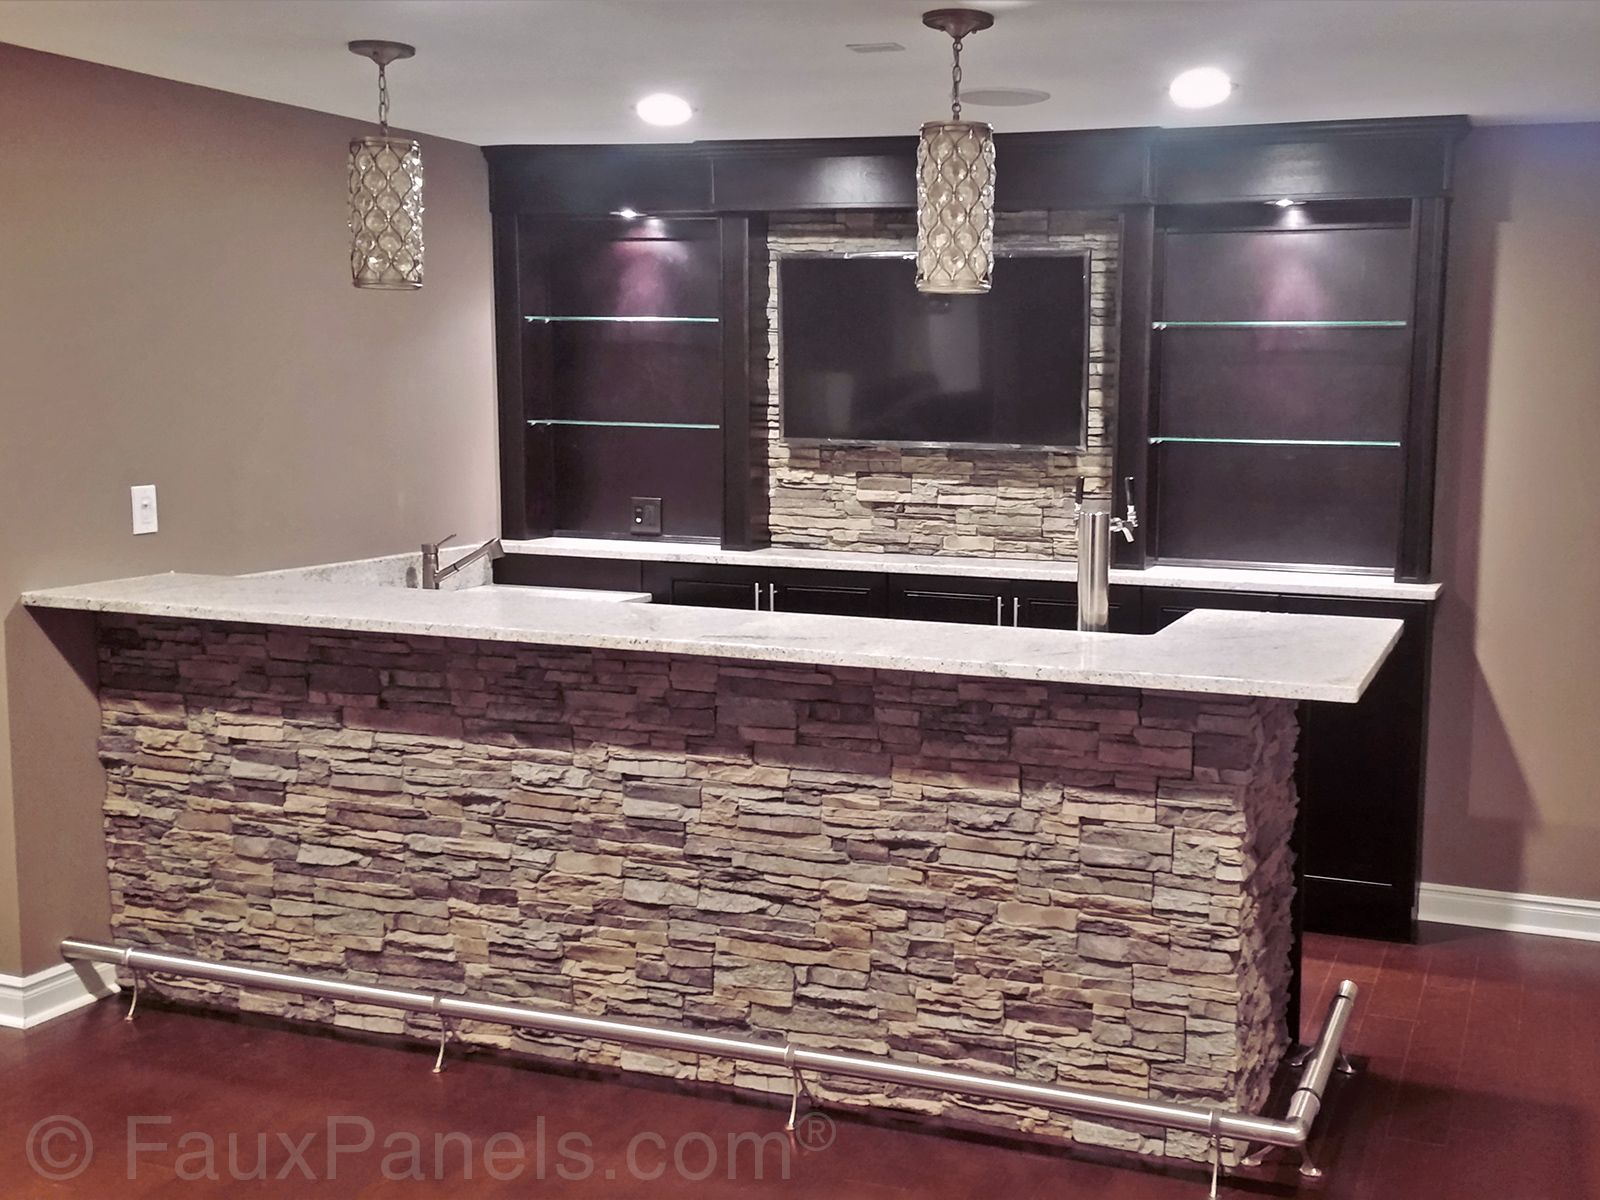 Home Bar Pictures | Design Ideas for Your Home Bar Plans | man cave ...